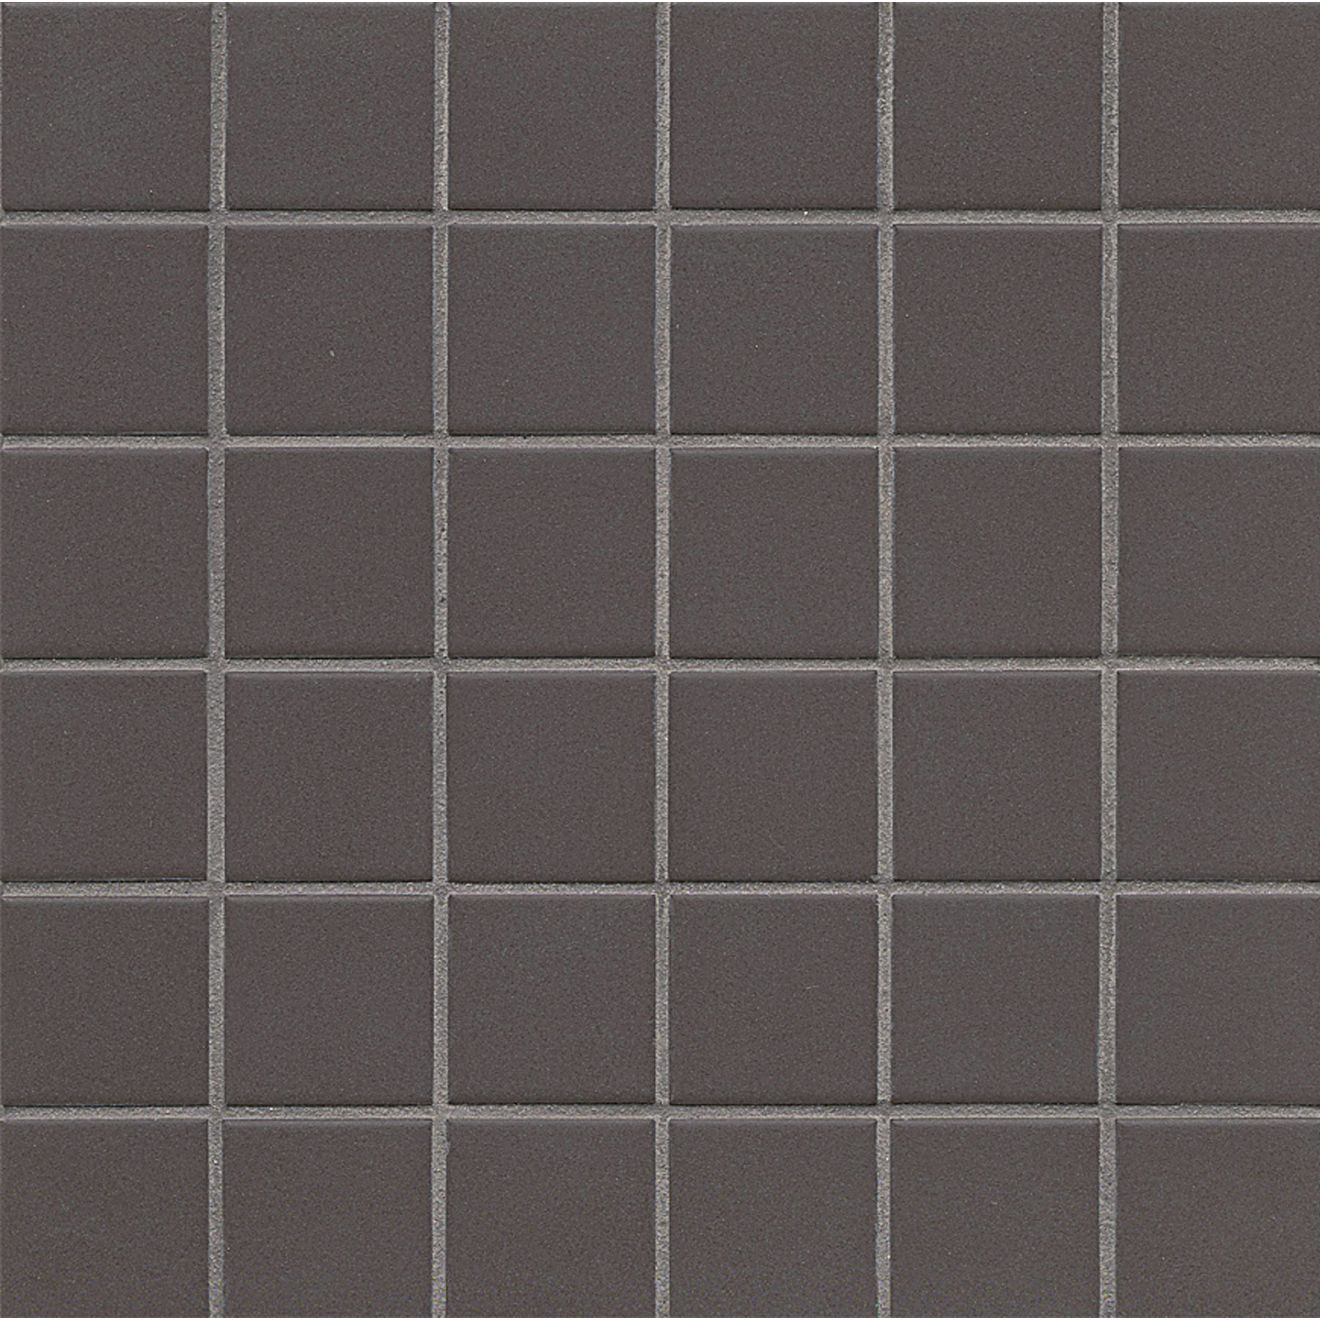 Elements Unglazed Mosaic in Black